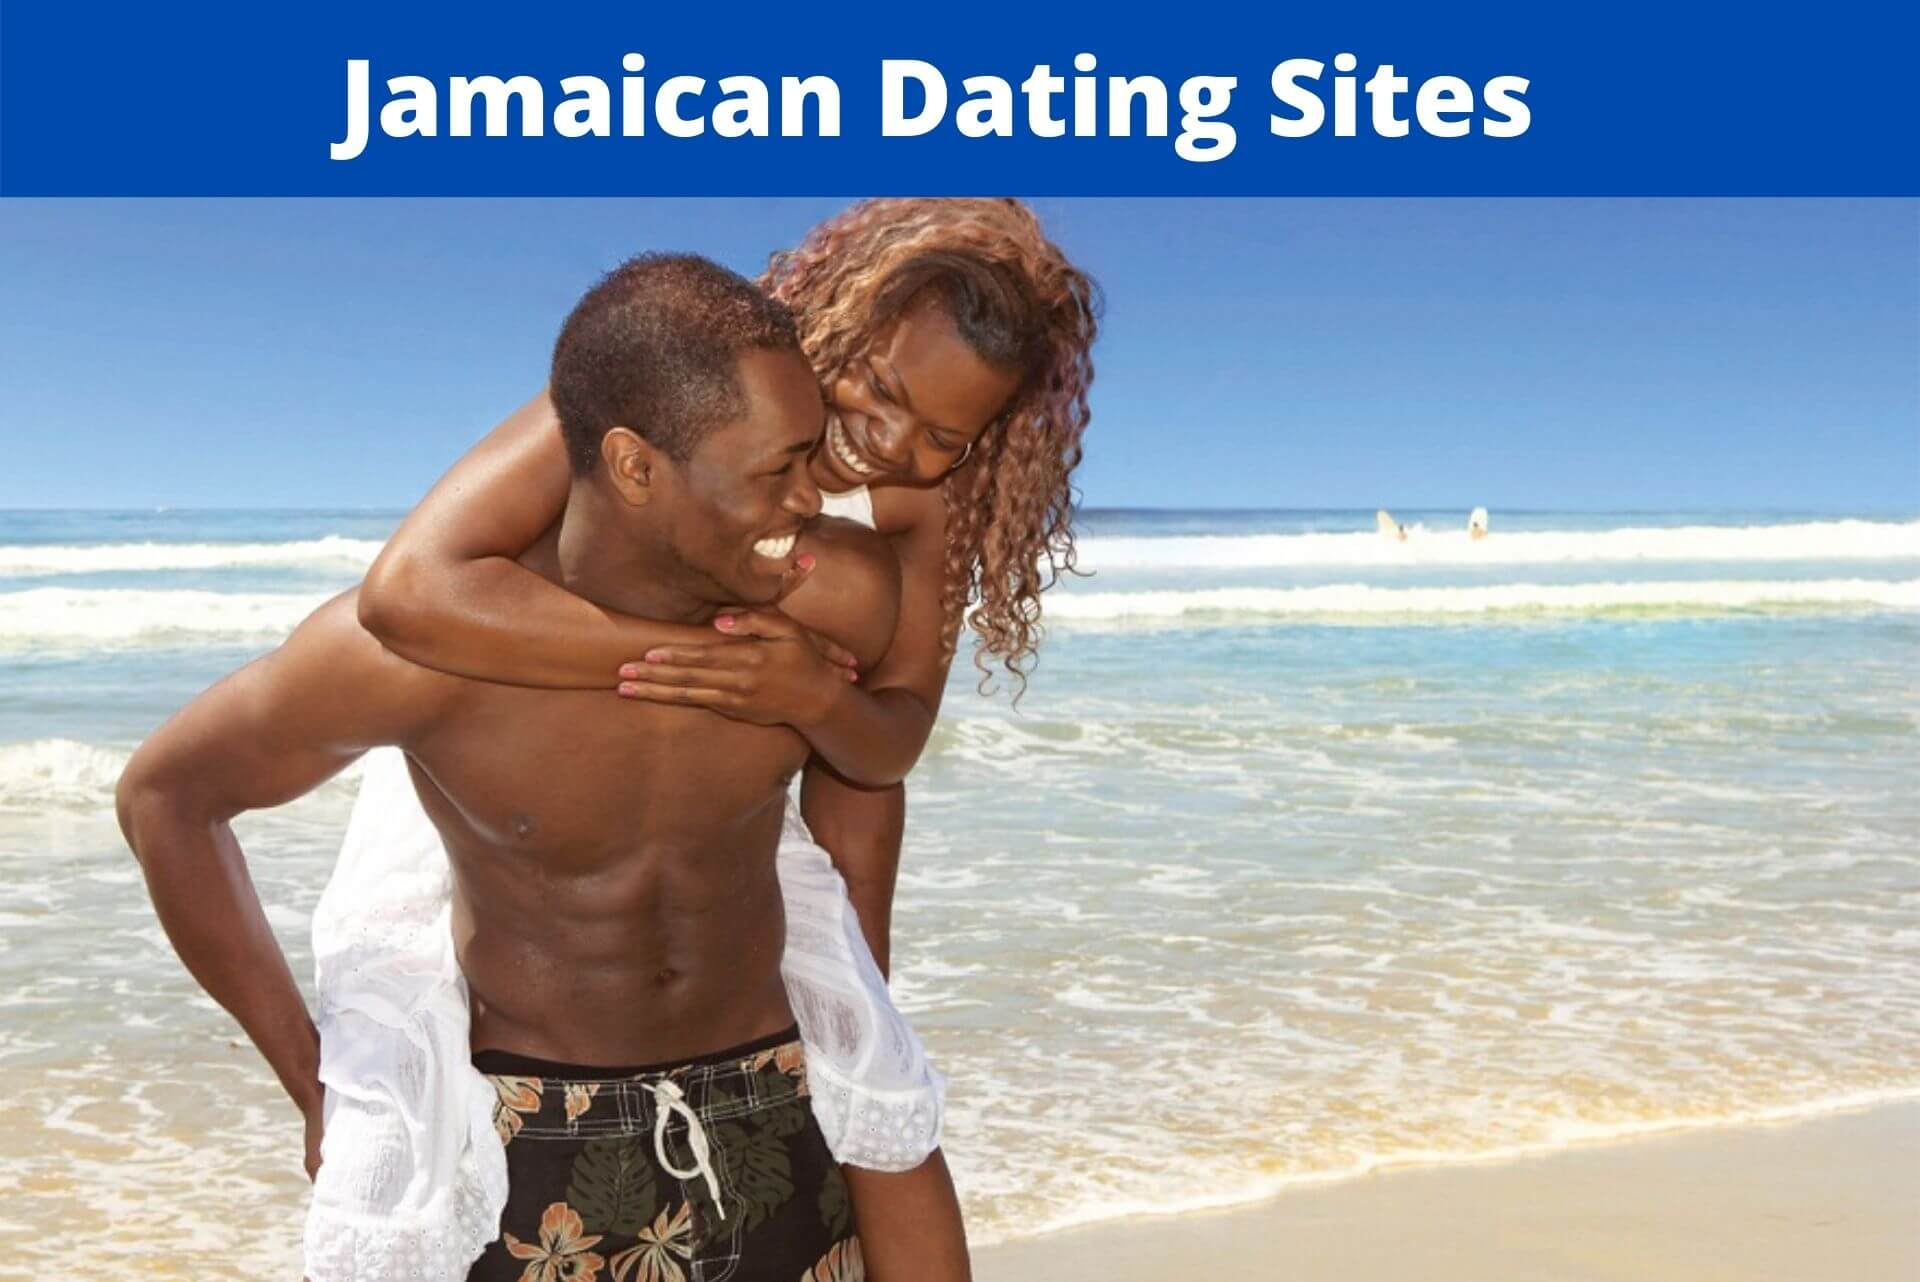 Top 7 Jamaican Dating Sites – Dating Sites for Jamaican